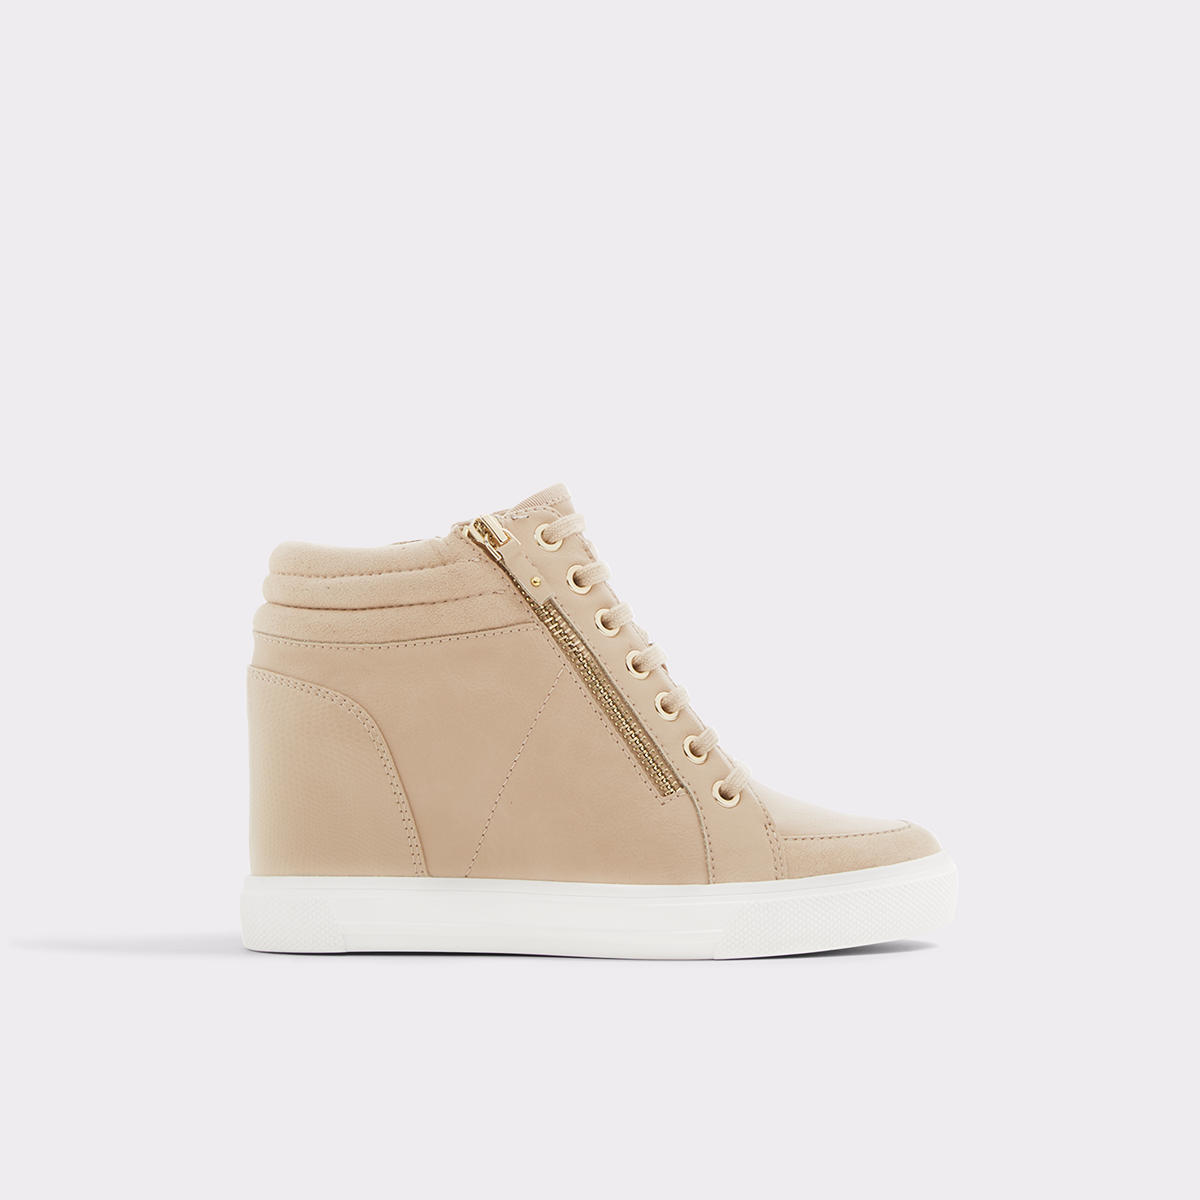 6d9f0662c4c6 Kaia Bone Women s Sneakers